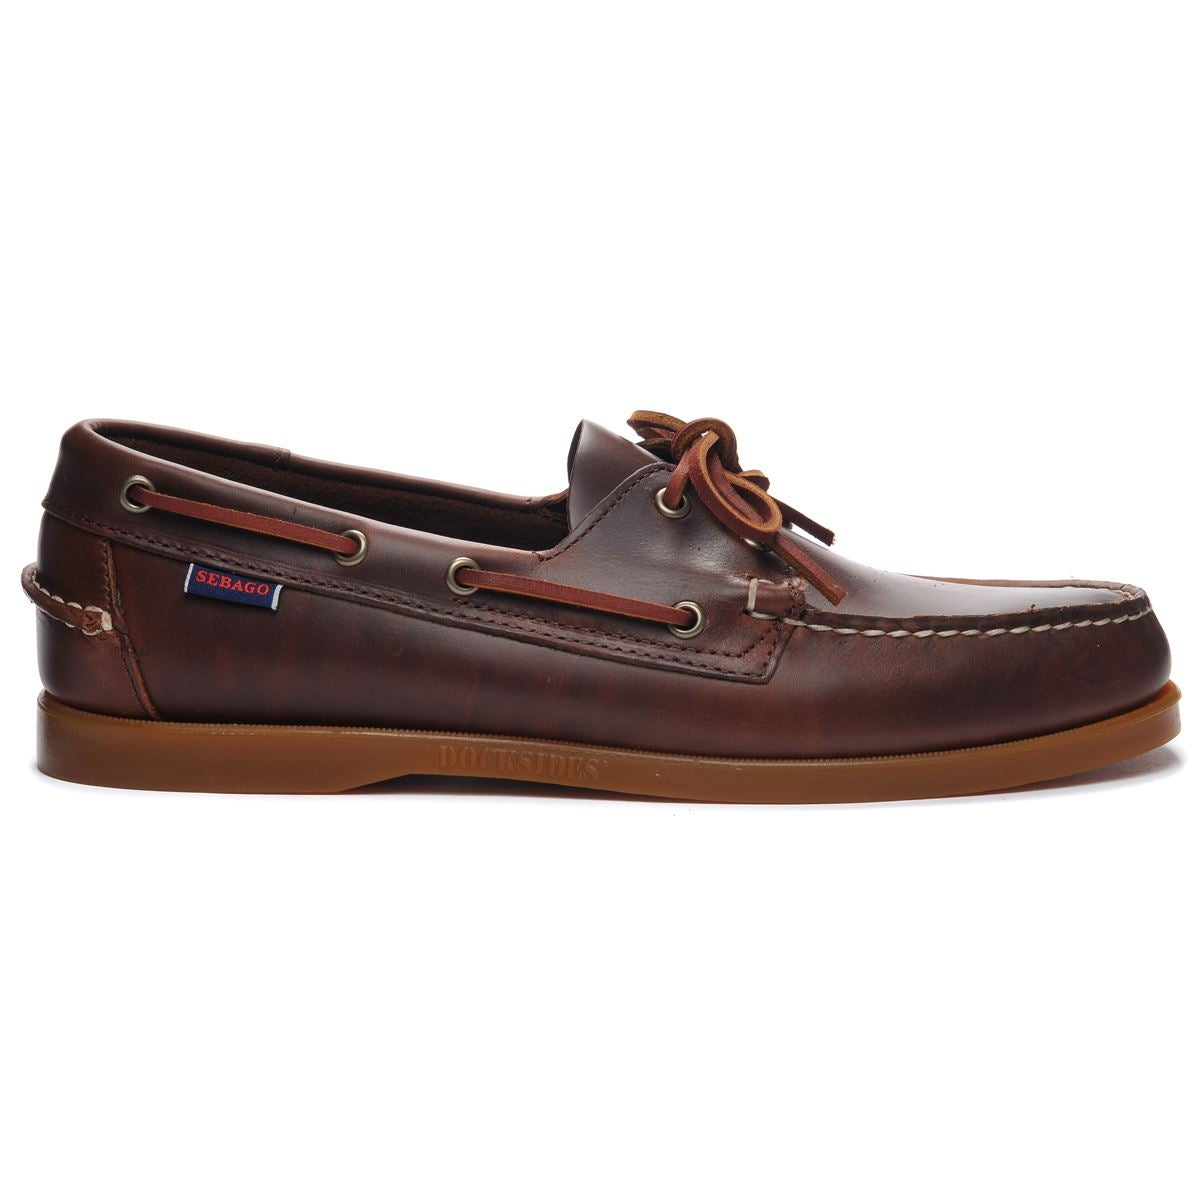 Image of Docksides brown waxed calf/honey by Sebago